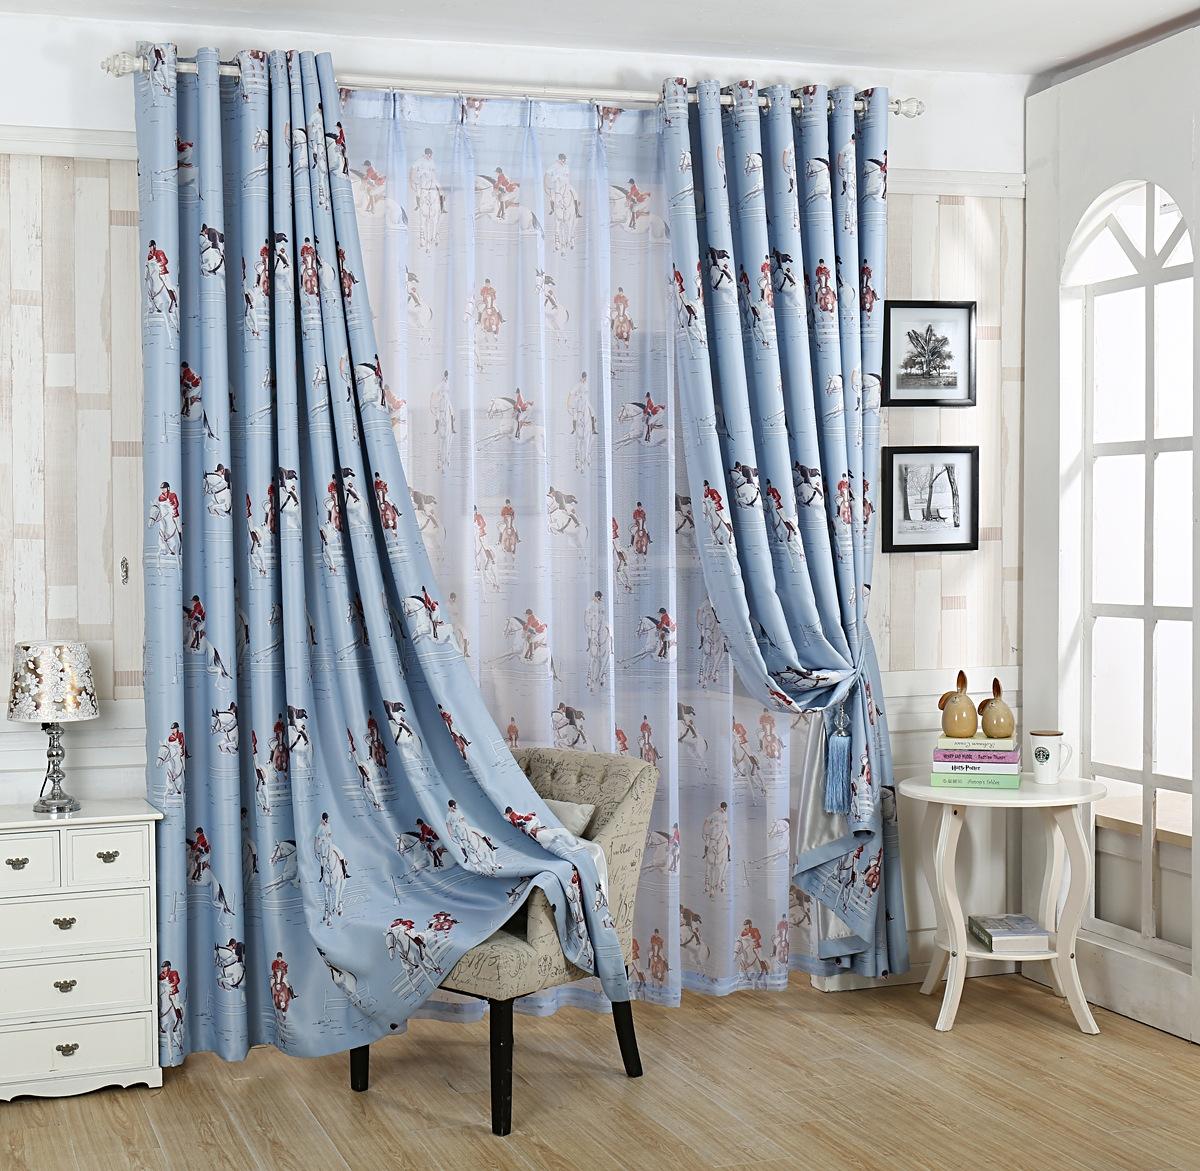 Online Buy Wholesale Thermal Bedroom Curtains From China Thermal Regarding Thermal Bedroom Curtains (View 7 of 15)